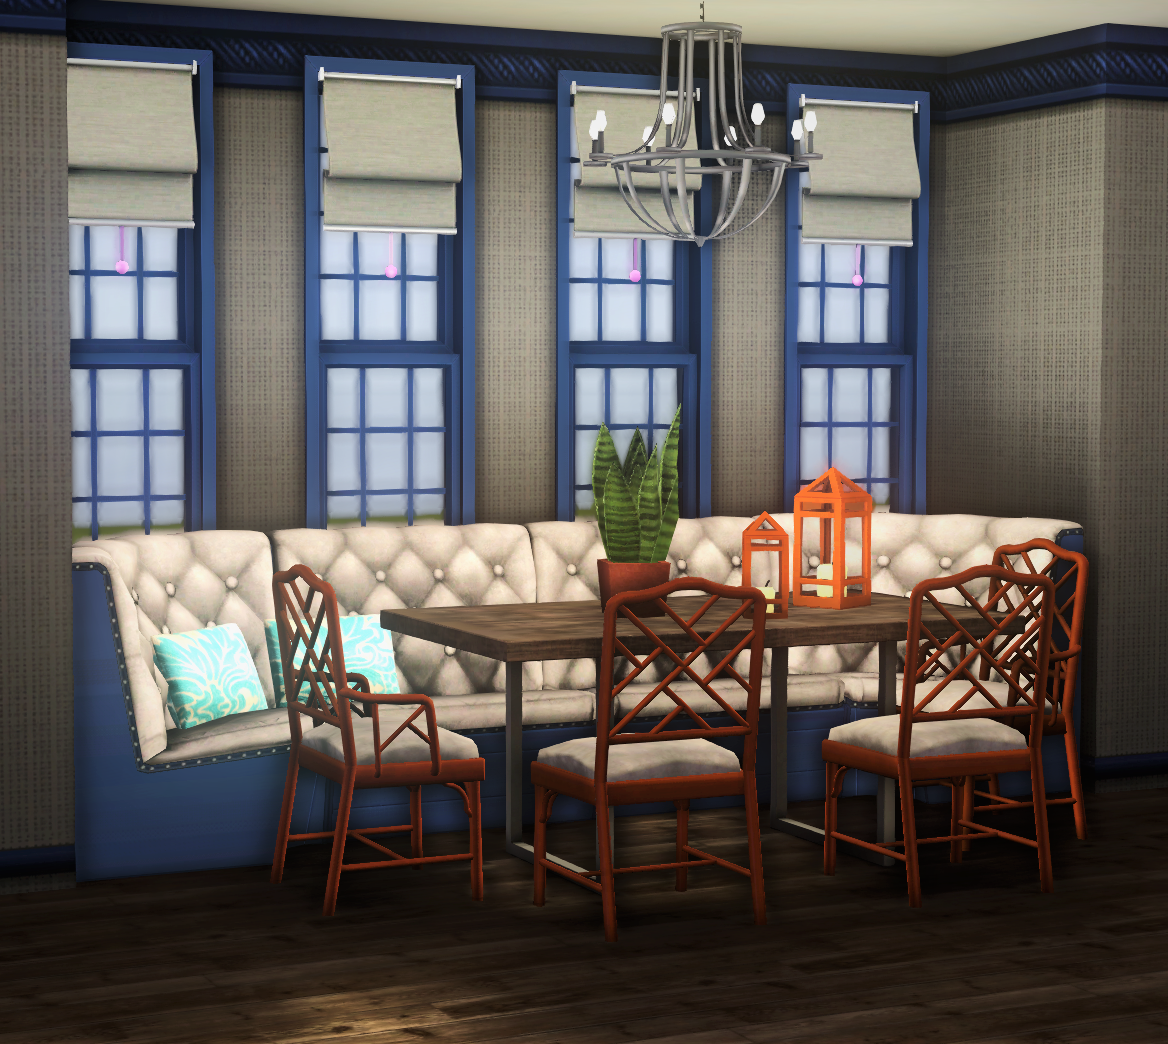 SNARKYSHARK CHINOISERIE CHAIRS - TS2 CONVERSION by architectural-sims